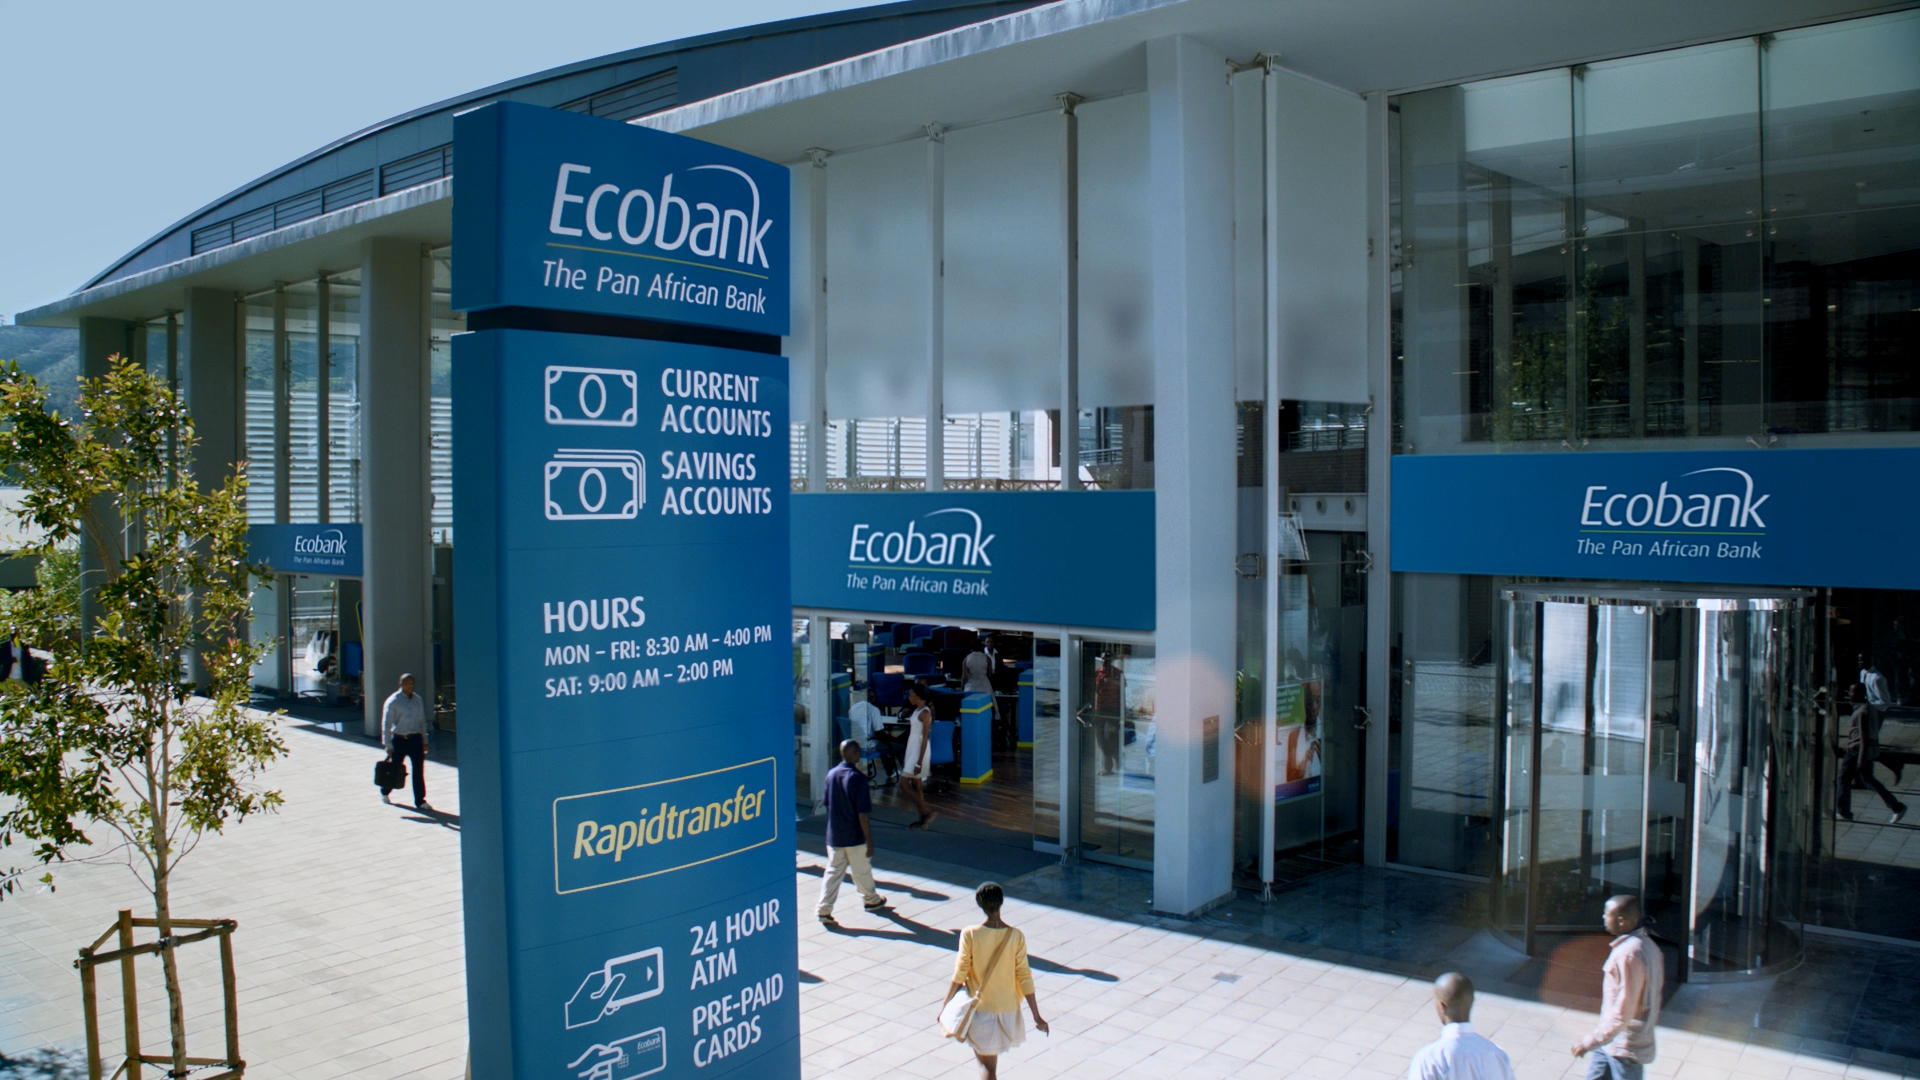 Did Ecobank let staffers get away with tax fraud?